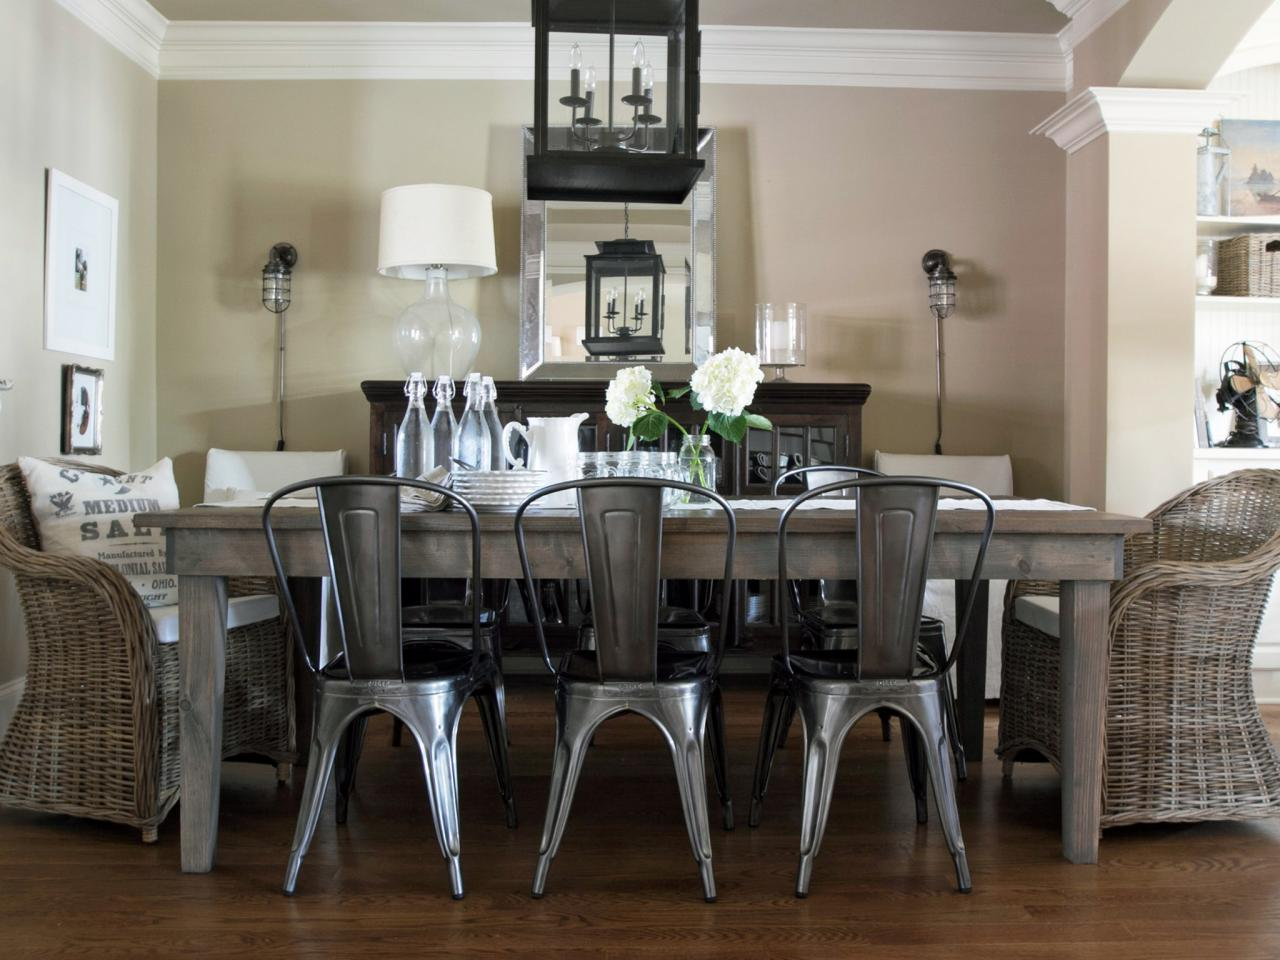 Industrial Chic Dining Room With Steel Chairs and Wood Table